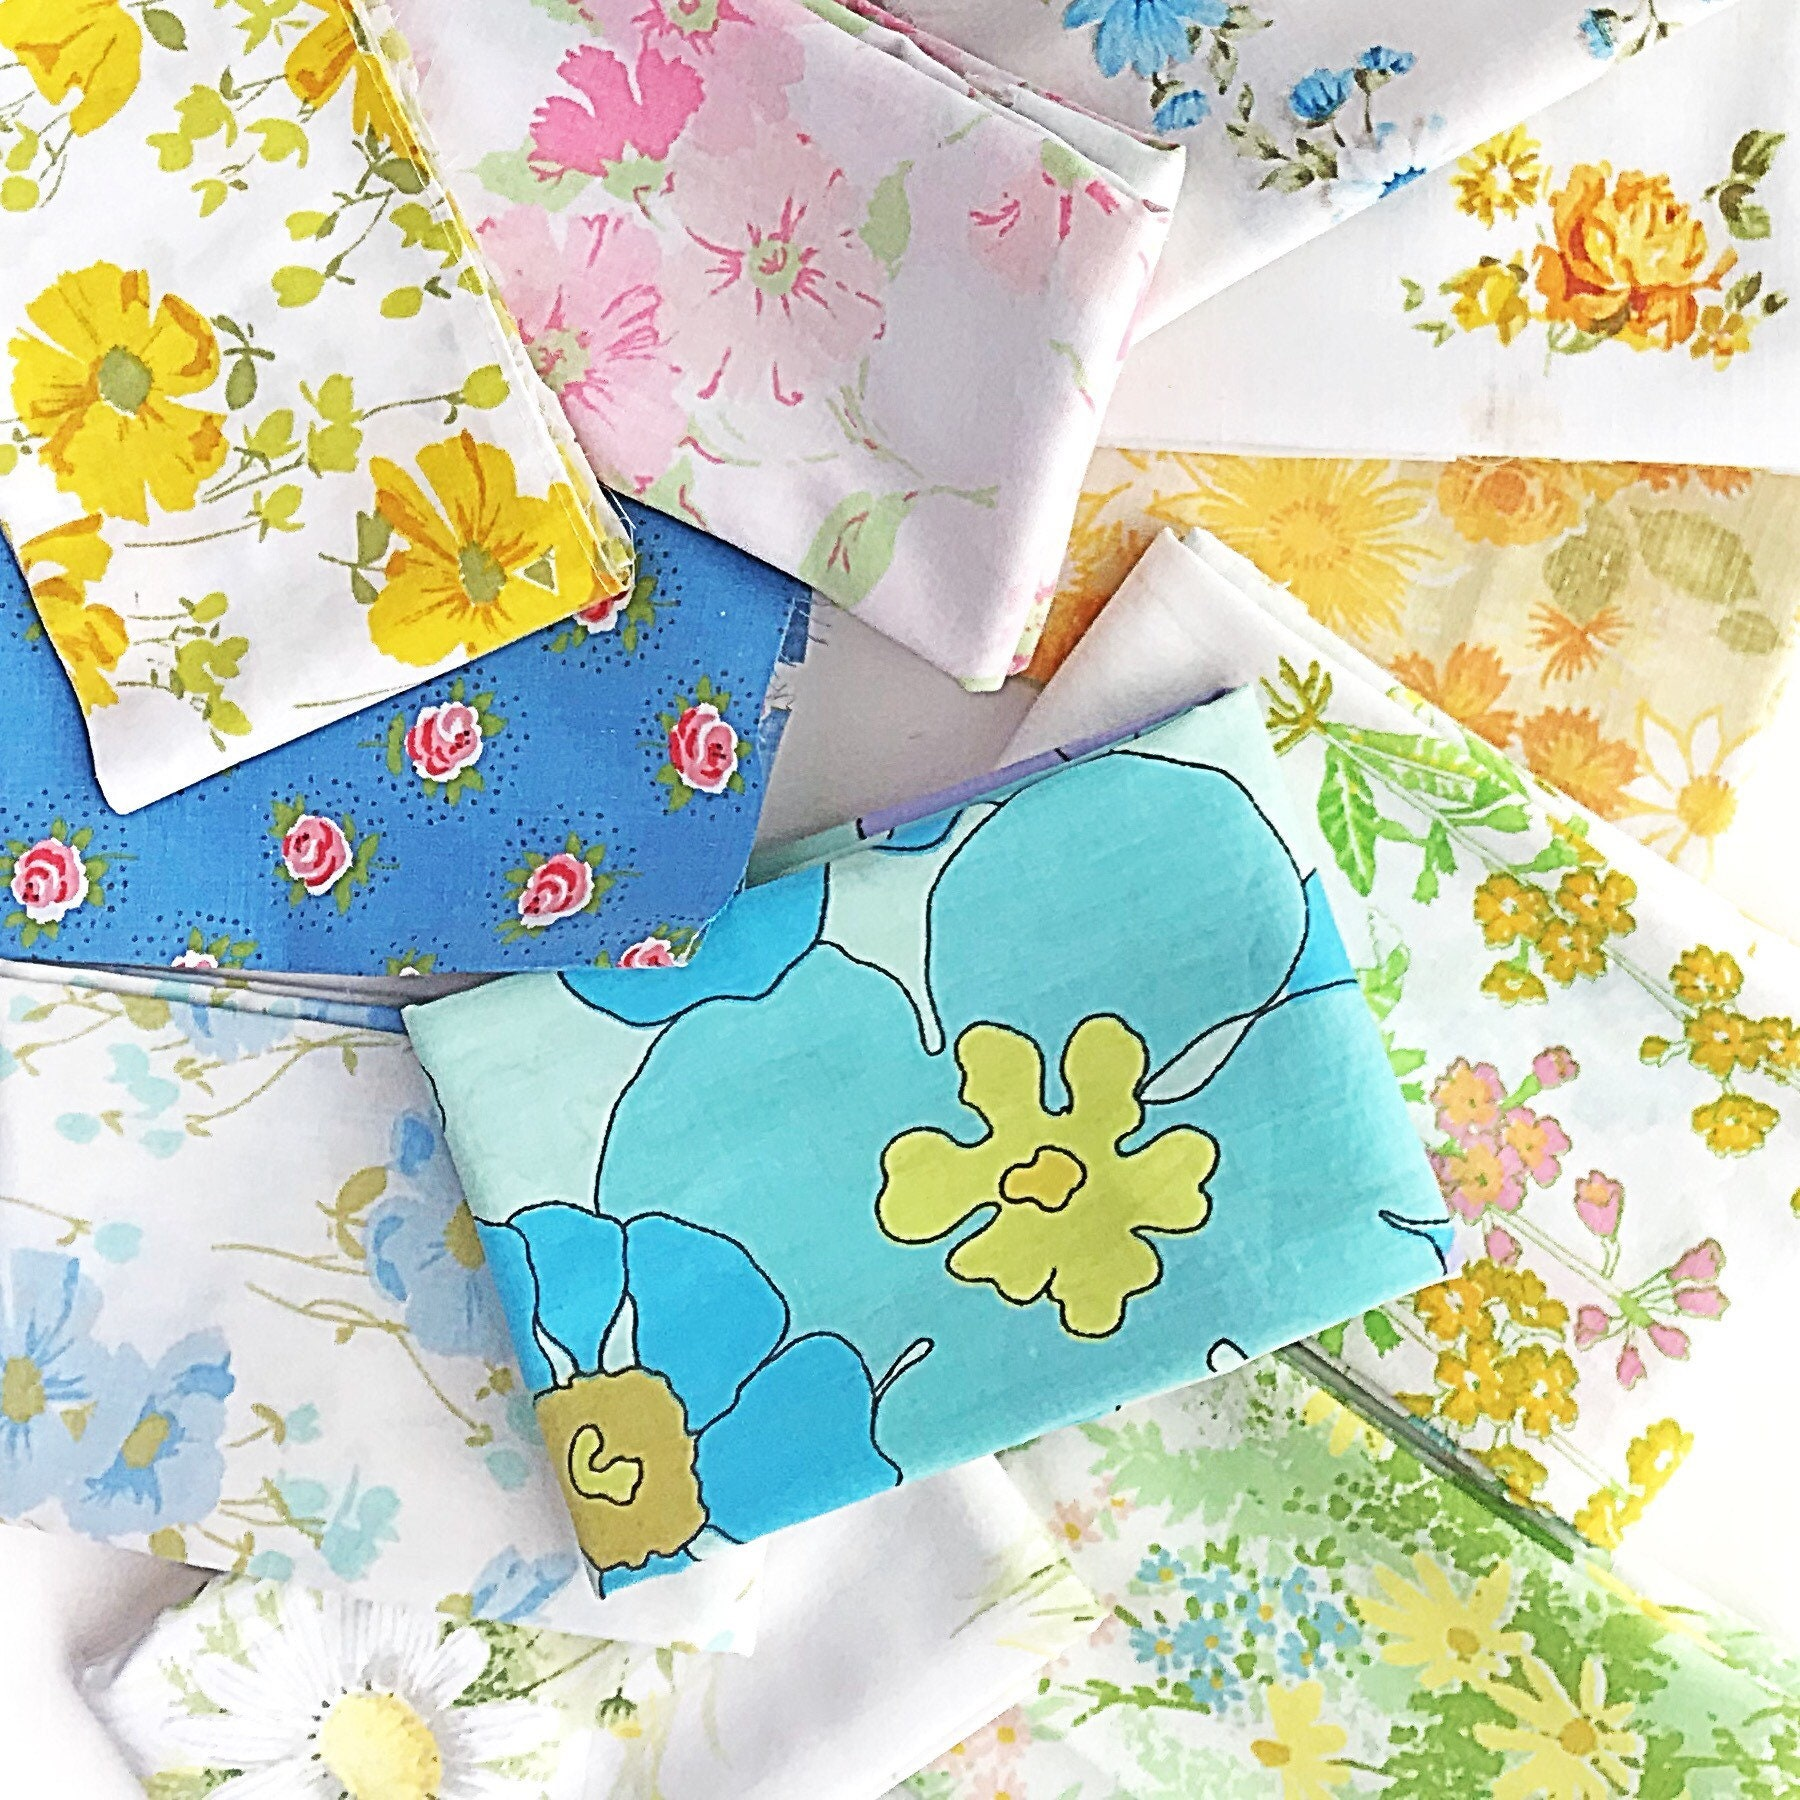 Vintage Bedsheet: Bundle Of 16 Clean U0026 Bright Vintage Bed Sheet Fabric  Cuts, Most Are 1/8 Yard Or Bigger; All Floral Bedsheets Prints!